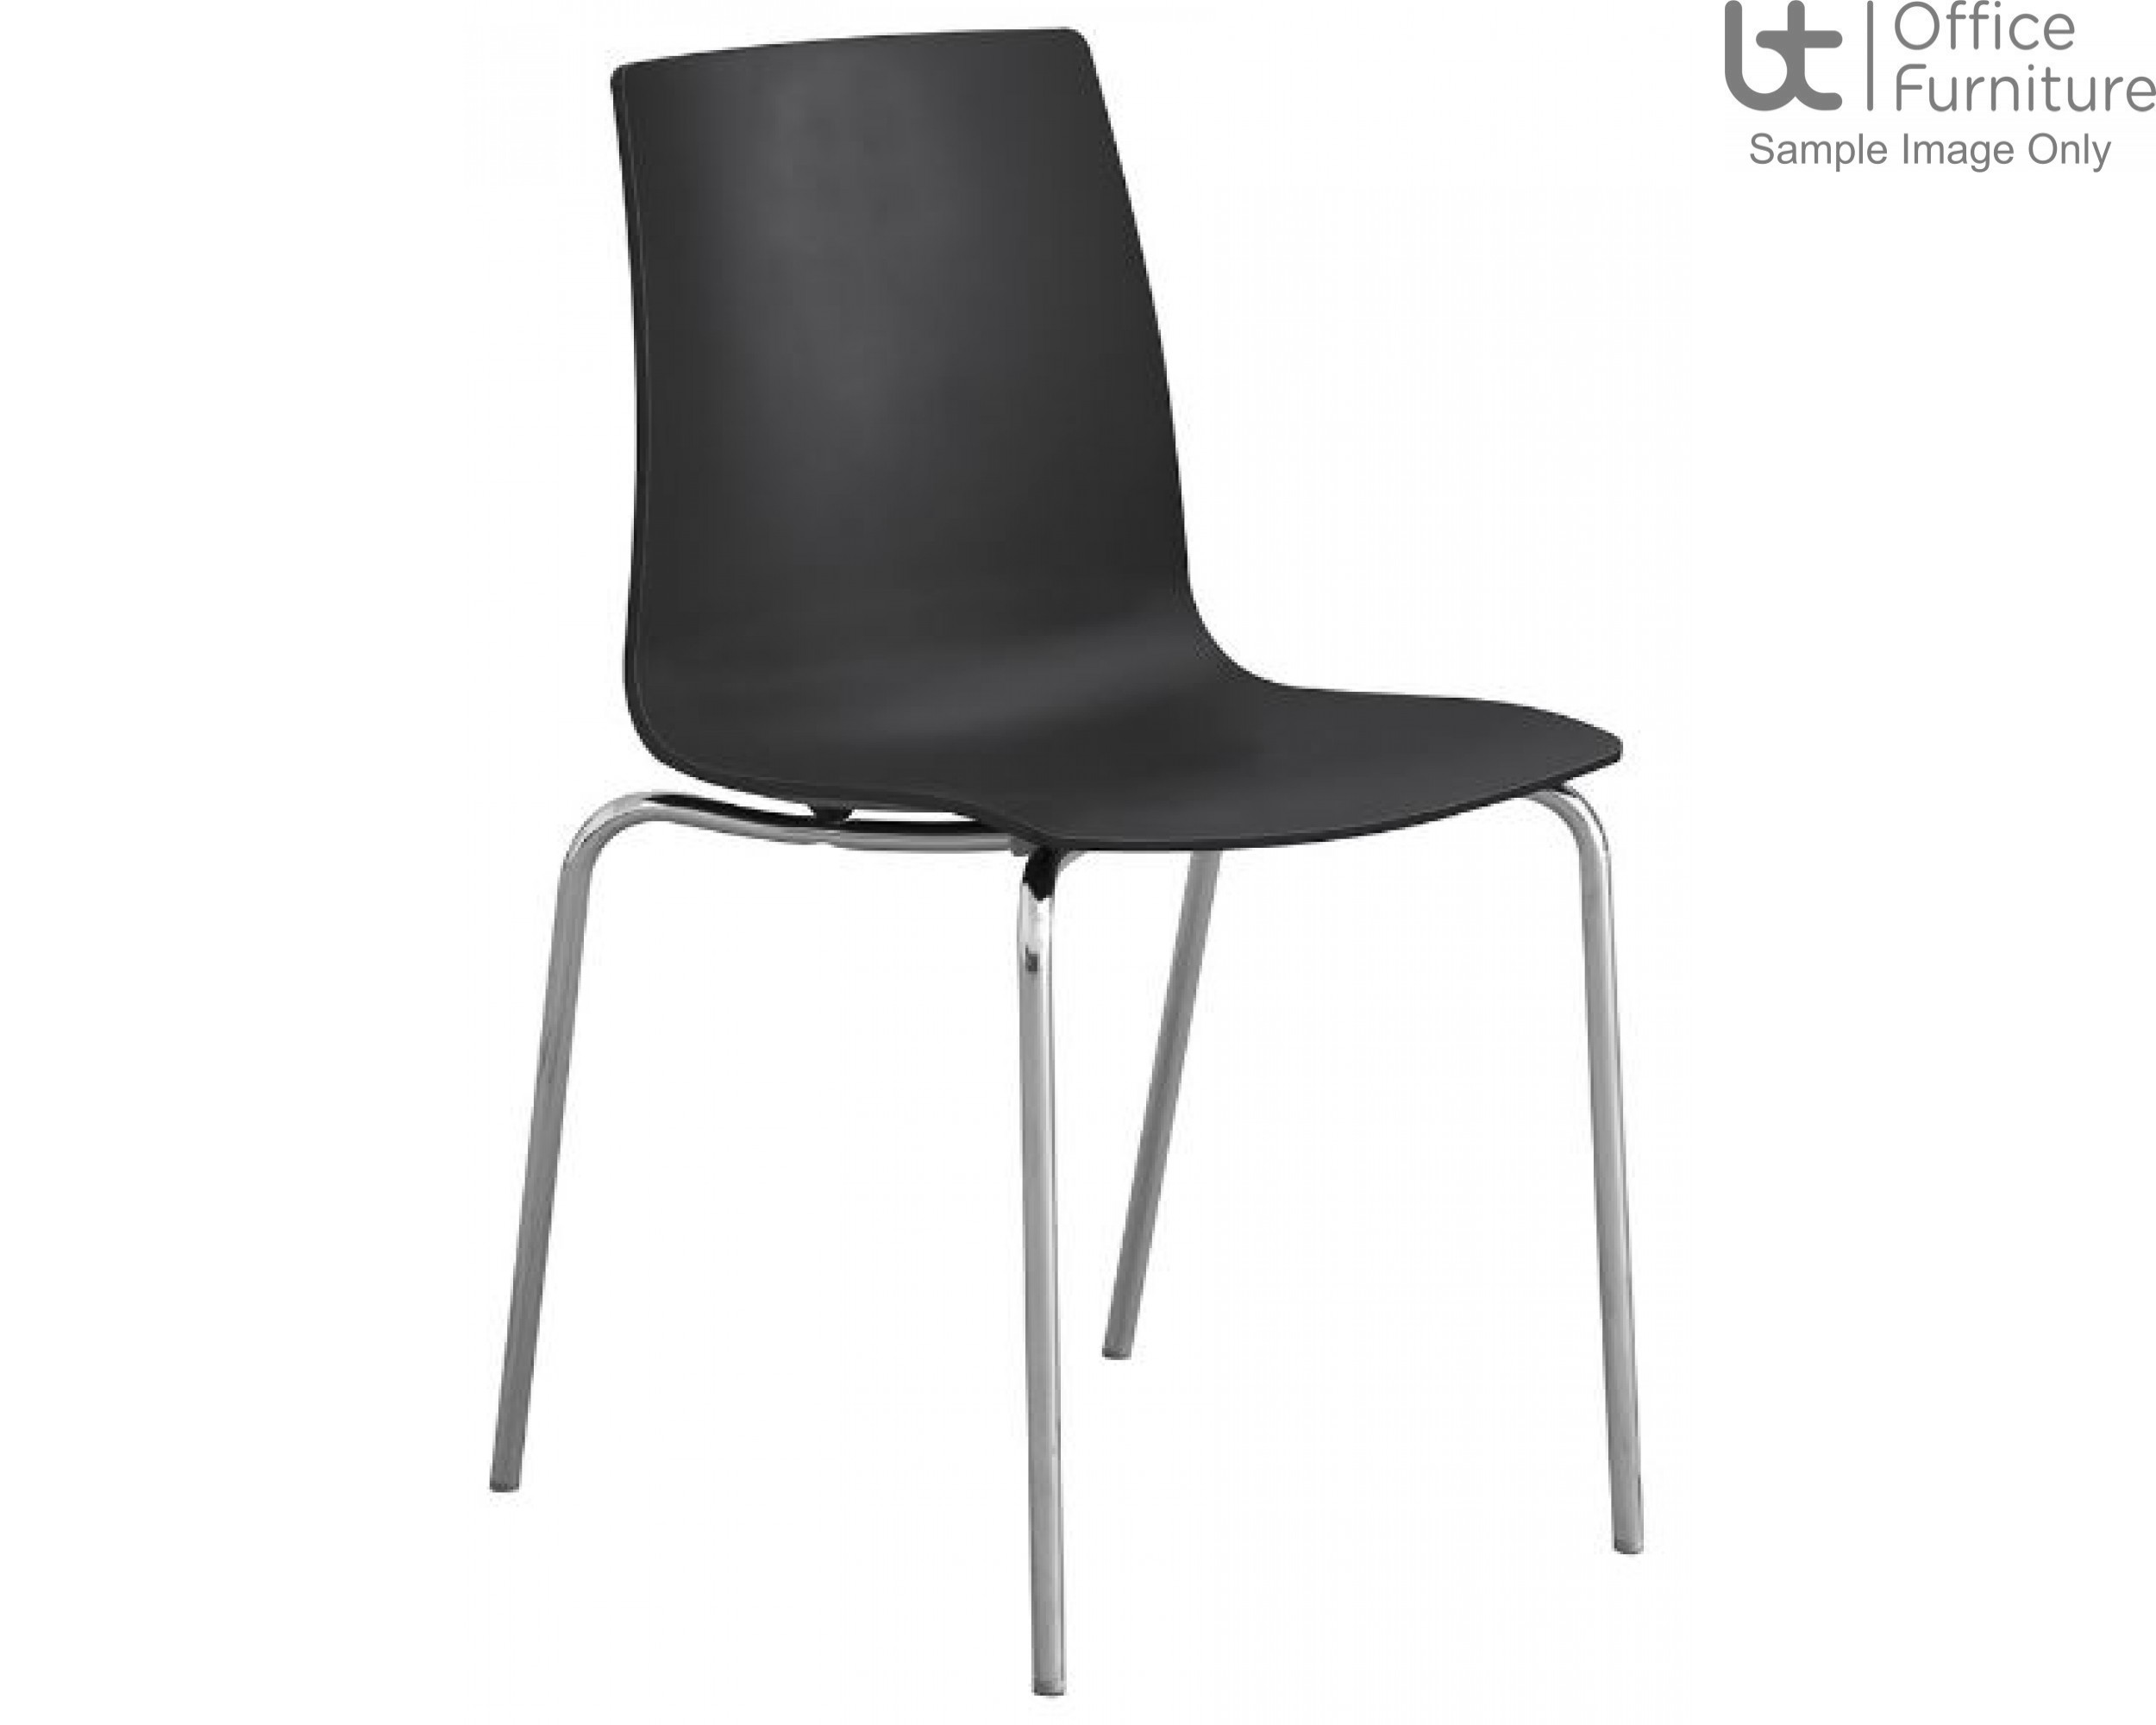 Stanza Black Cafe/Bistro/Canteen Chair